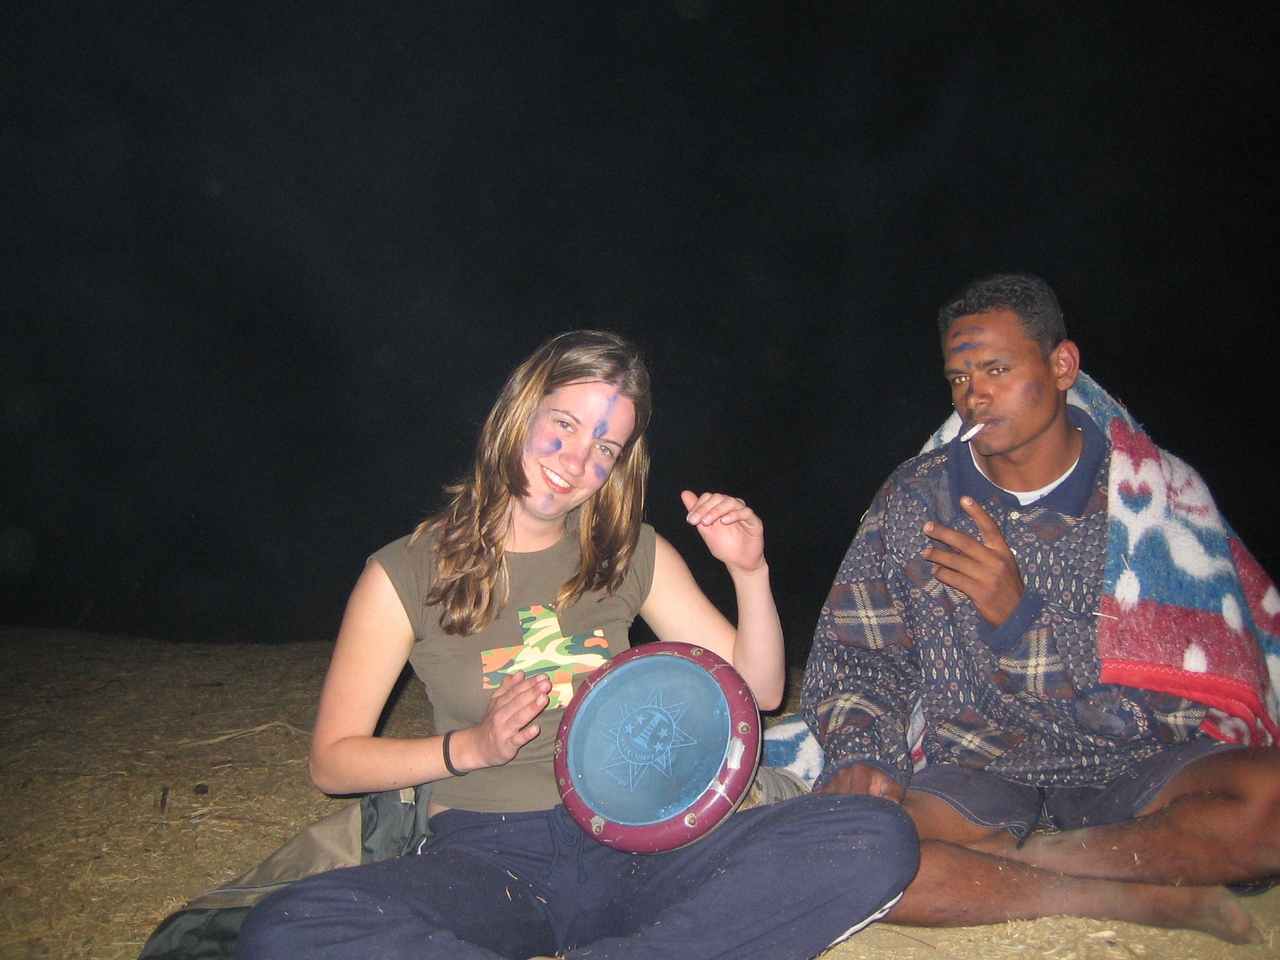 r1) Megan learns how to play the drum.